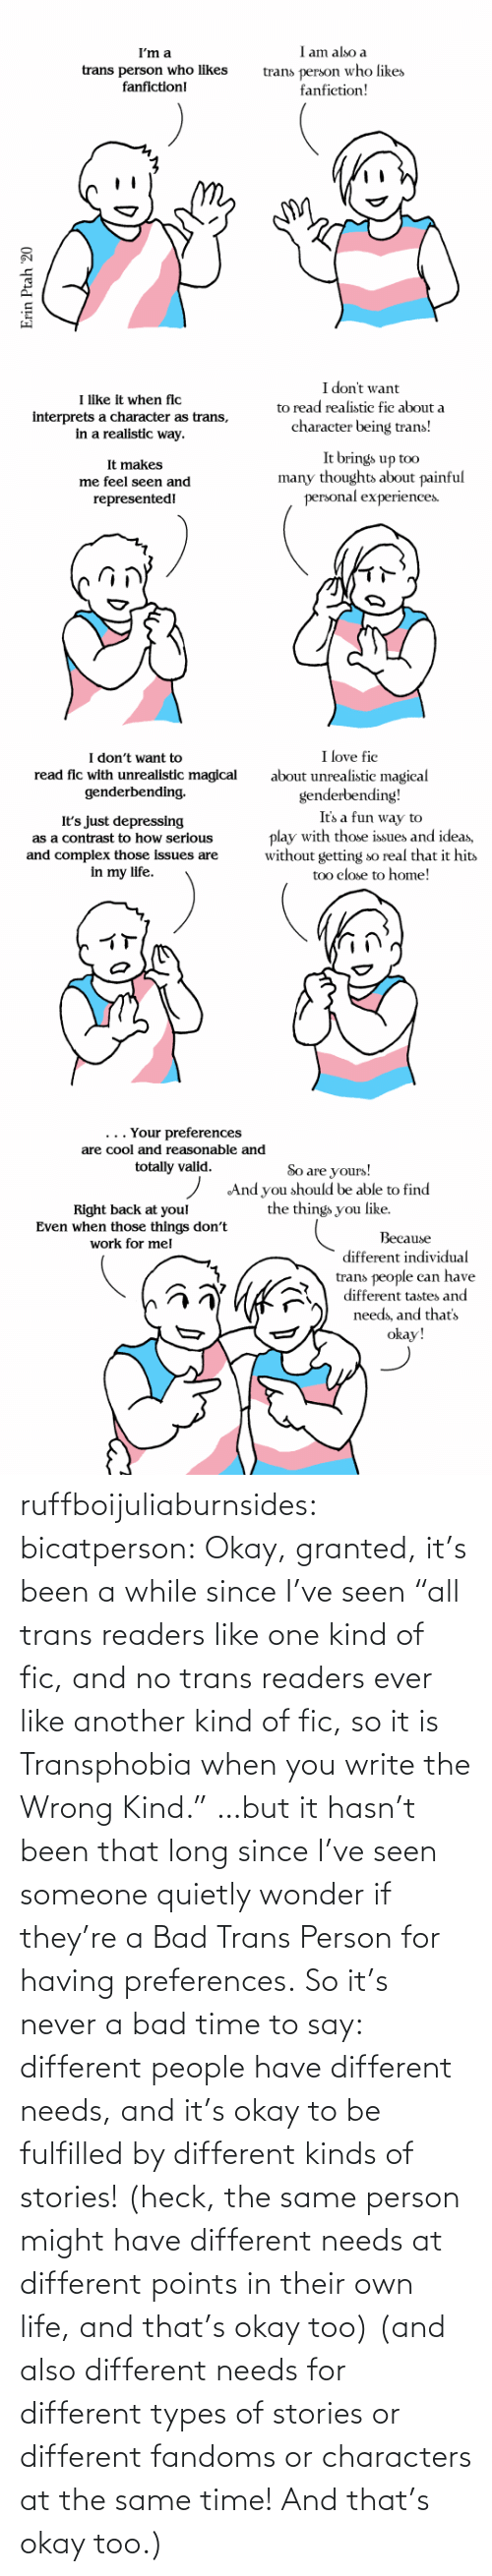 "Bad, Life, and Tumblr: ruffboijuliaburnsides: bicatperson:   Okay, granted, it's been a while since I've seen ""all trans readers  like one kind of fic, and no trans readers ever like another kind of  fic, so it is Transphobia when you write the Wrong Kind."" …but it hasn't been that long since I've seen someone quietly wonder if they're a Bad Trans Person for having preferences. So  it's never a bad time to say: different people have different needs,  and it's okay to be fulfilled by different kinds of stories! (heck, the same person might have different needs at different points in their own life, and that's okay too)    (and also different needs for different types of stories or different fandoms or characters at the same time!  And that's okay too.)"